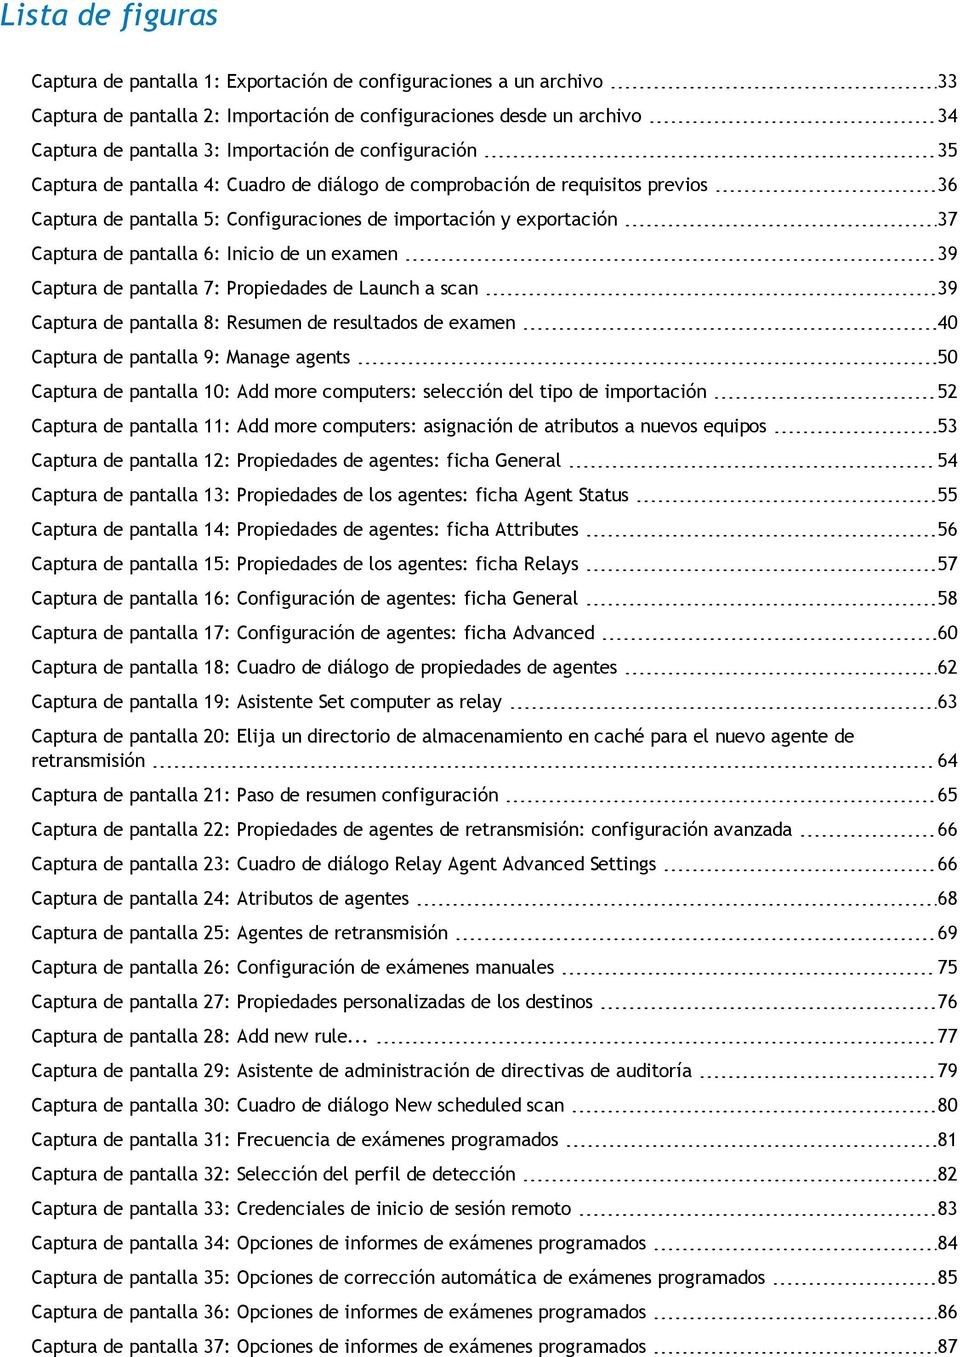 de un examen 39 Captura de pantalla 7: Propiedades de Launch a scan 39 Captura de pantalla 8: Resumen de resultados de examen 40 Captura de pantalla 9: Manage agents 50 Captura de pantalla 10: Add